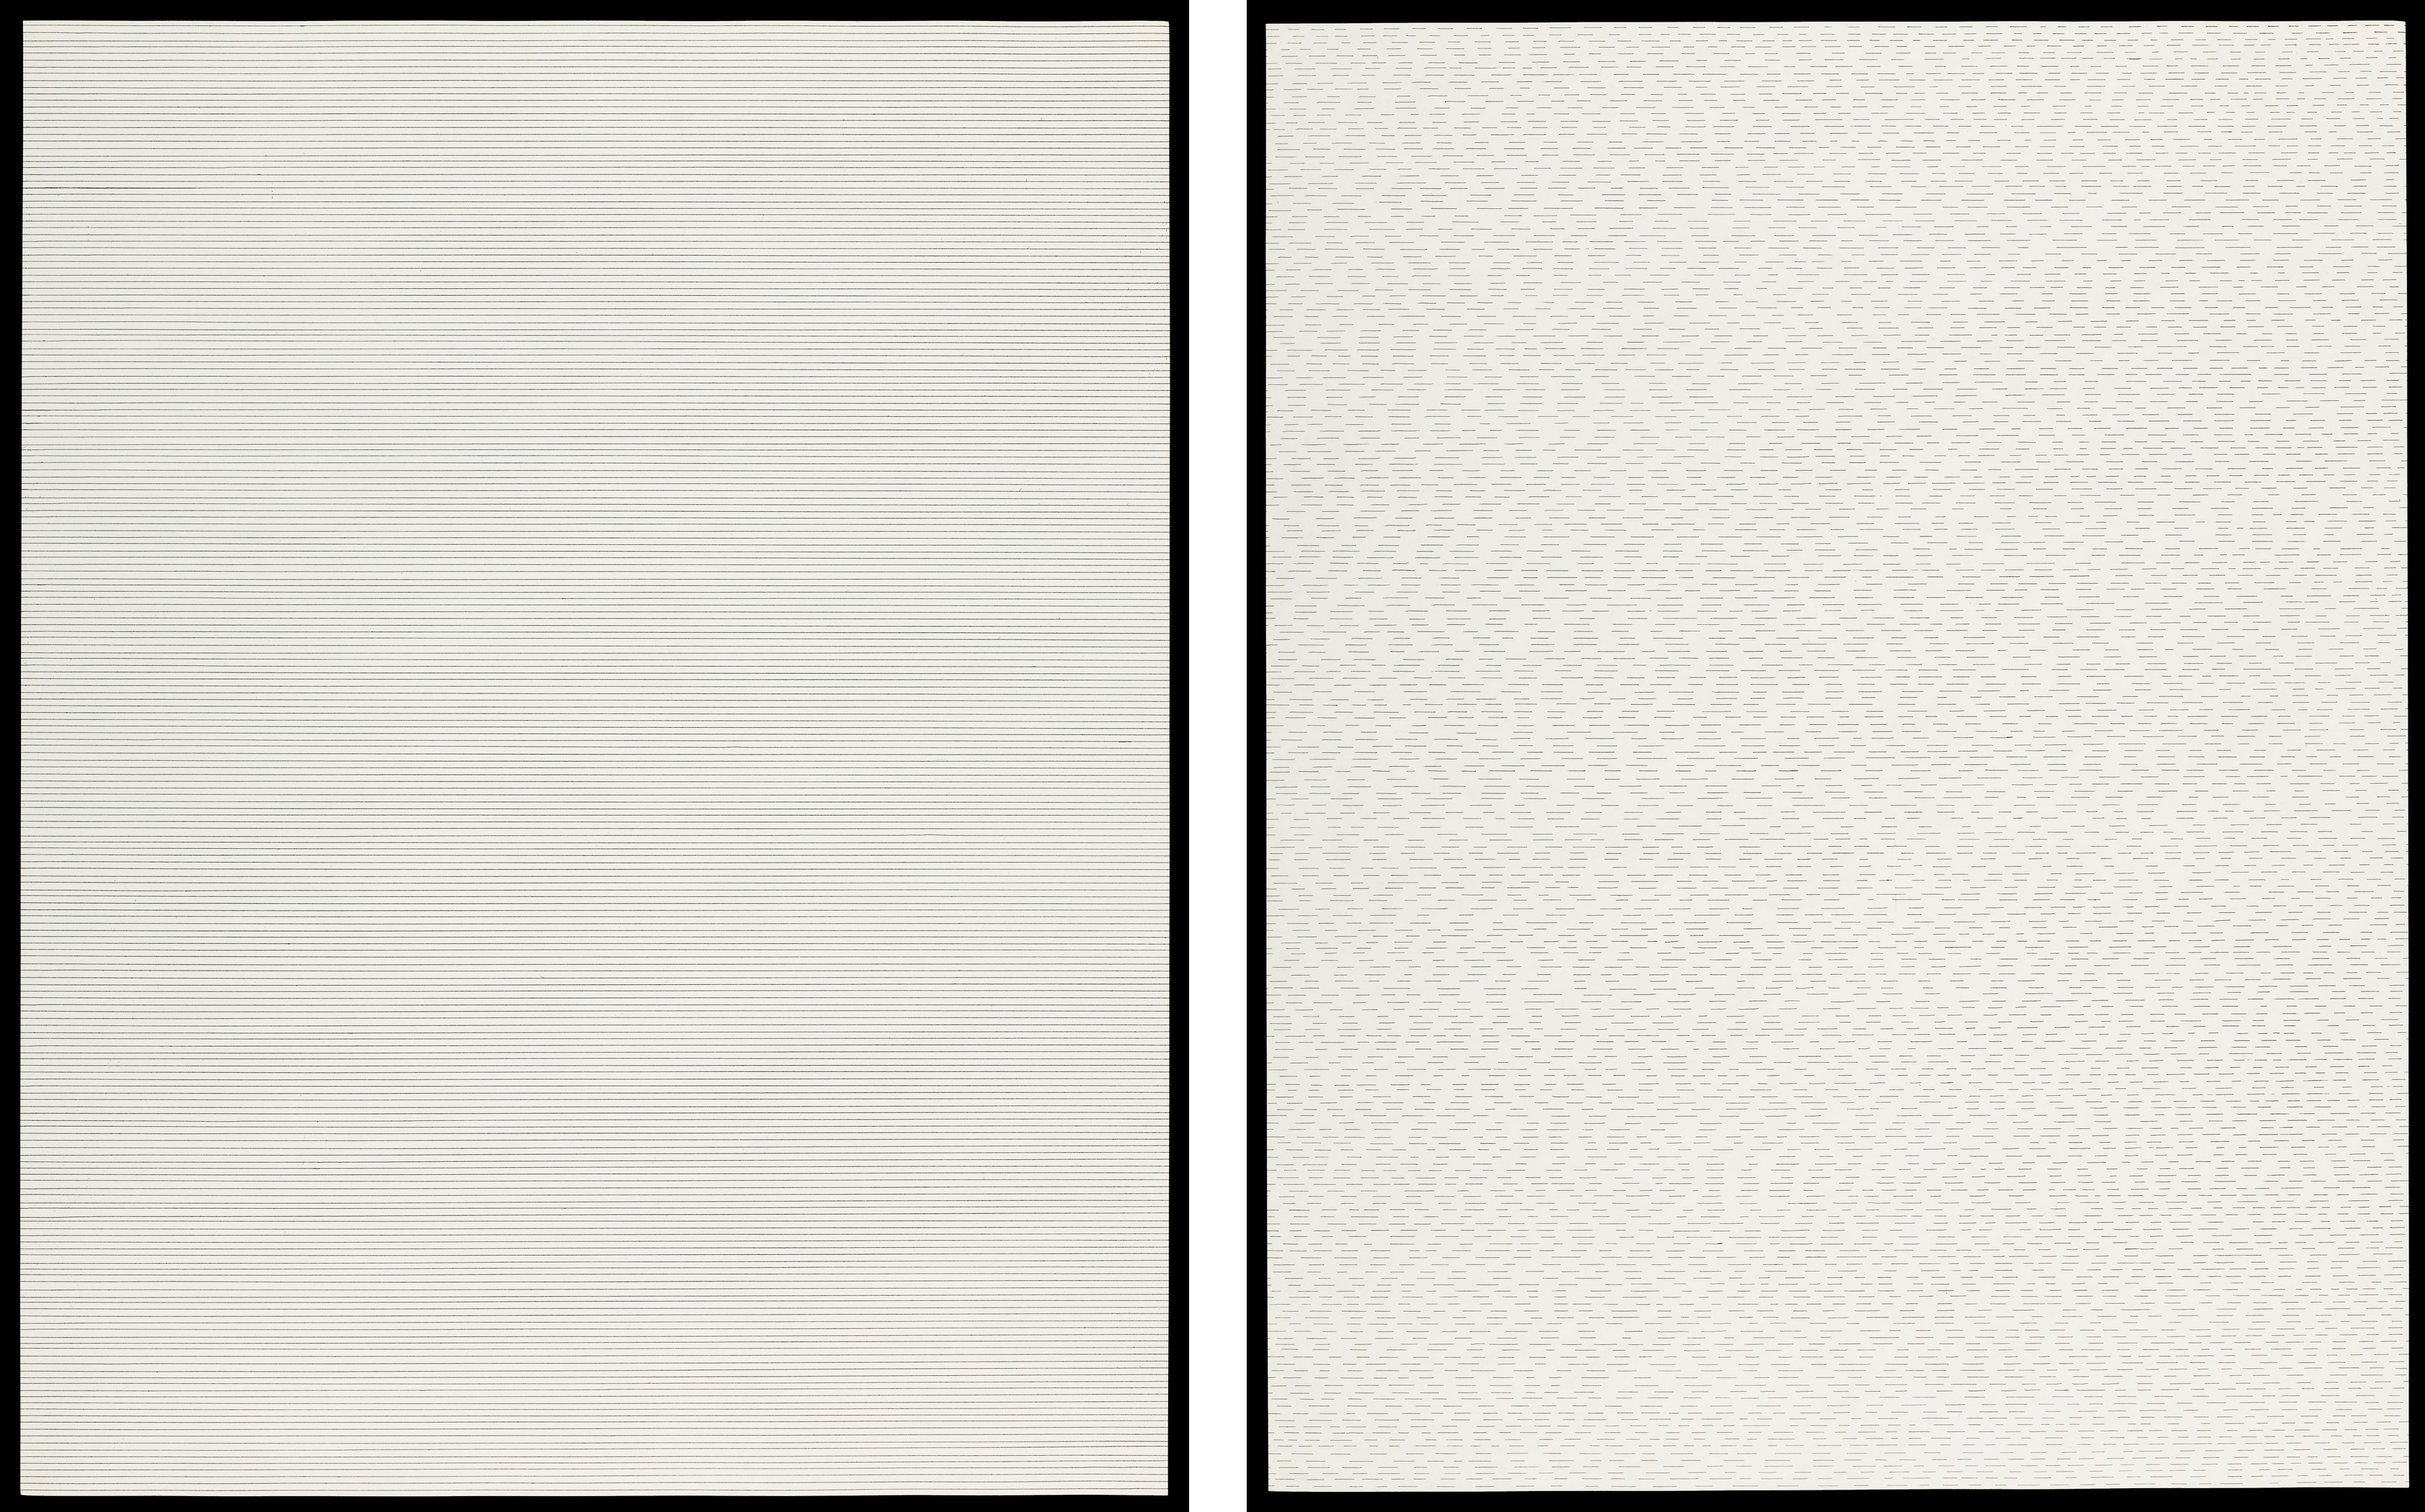 Left: Sol LeWitt, STRAIGHT LINES, 1973, Los Angeles County Museum of Art, purchased with funds provided by Wellington D. Watters, © Sol LeWitt Estate / Artists Rights Society (ARS), New York, photo © Museum Associates/LACMA; Right: Sol LeWitt, NOT-STRAIGHT LINES, 1973, Los Angeles County Museum of Art, purchased with funds provided by Wellington D. Watters, © Sol LeWitt Estate / Artists Rights Society (ARS), New York, photo © Museum Associates/LACMA